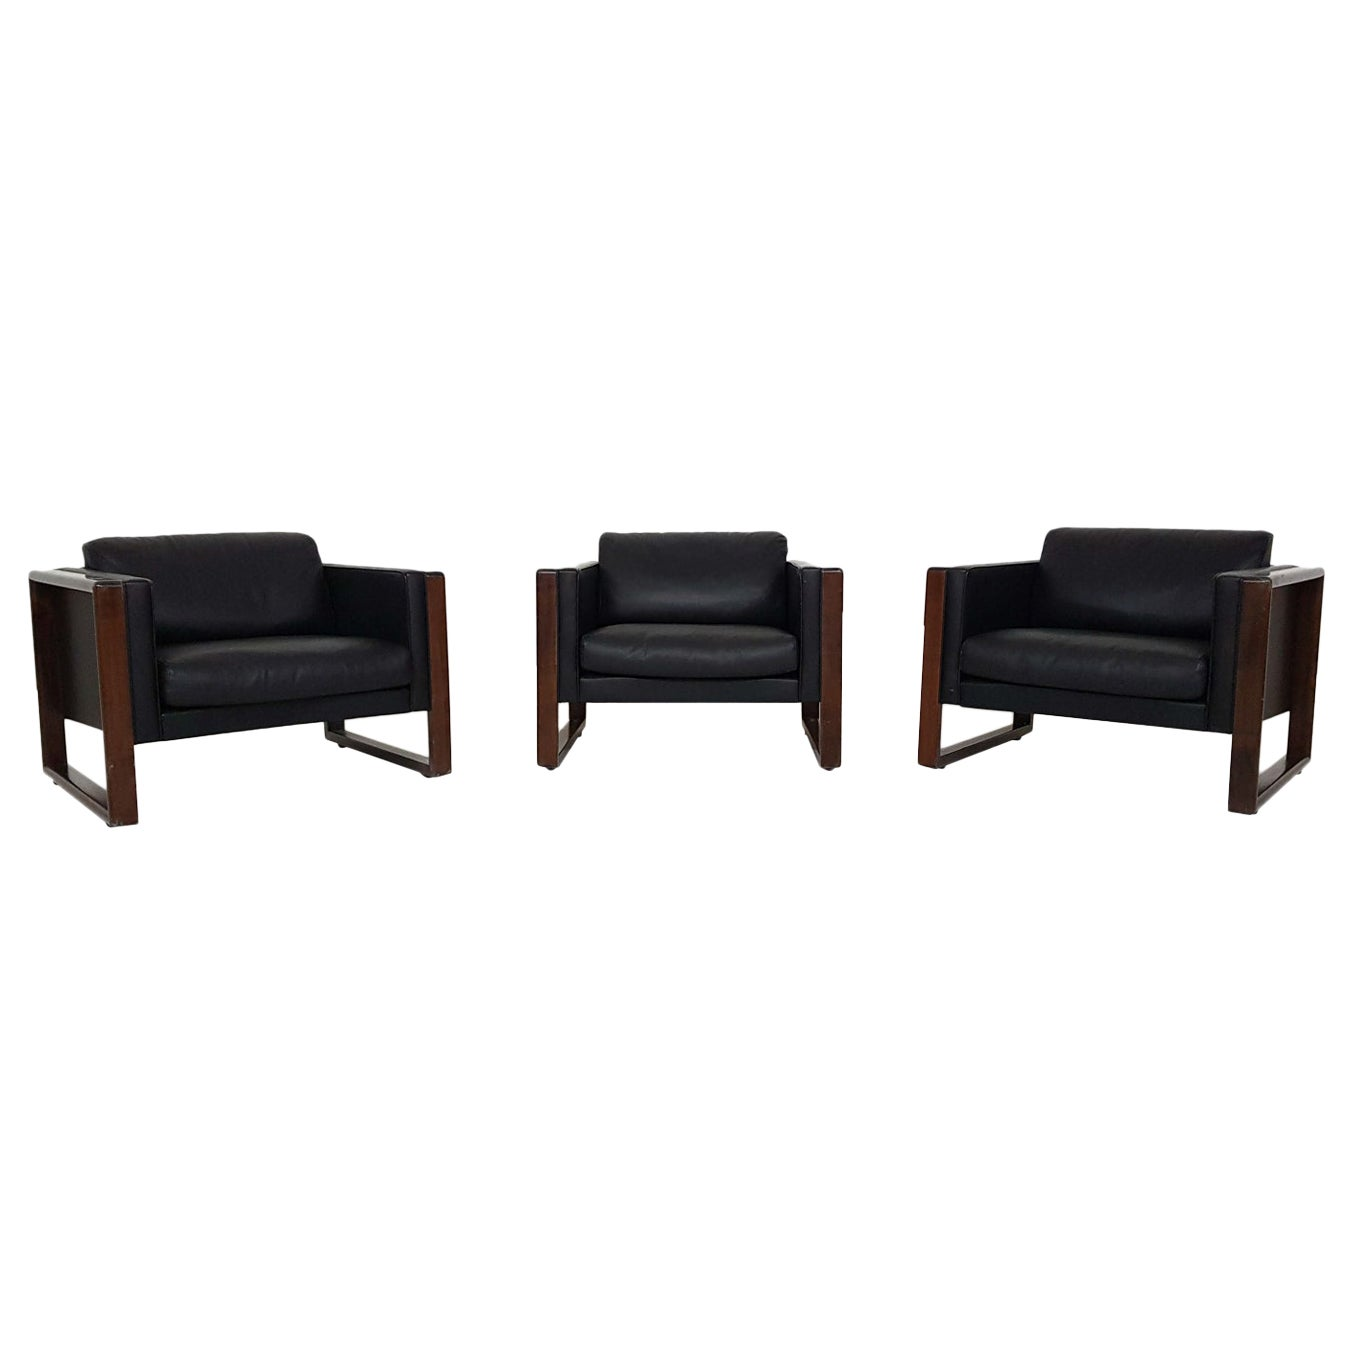 Set of 3 Black Leather Walter Knoll Lounge or Club Chairs, Germany, 1960s